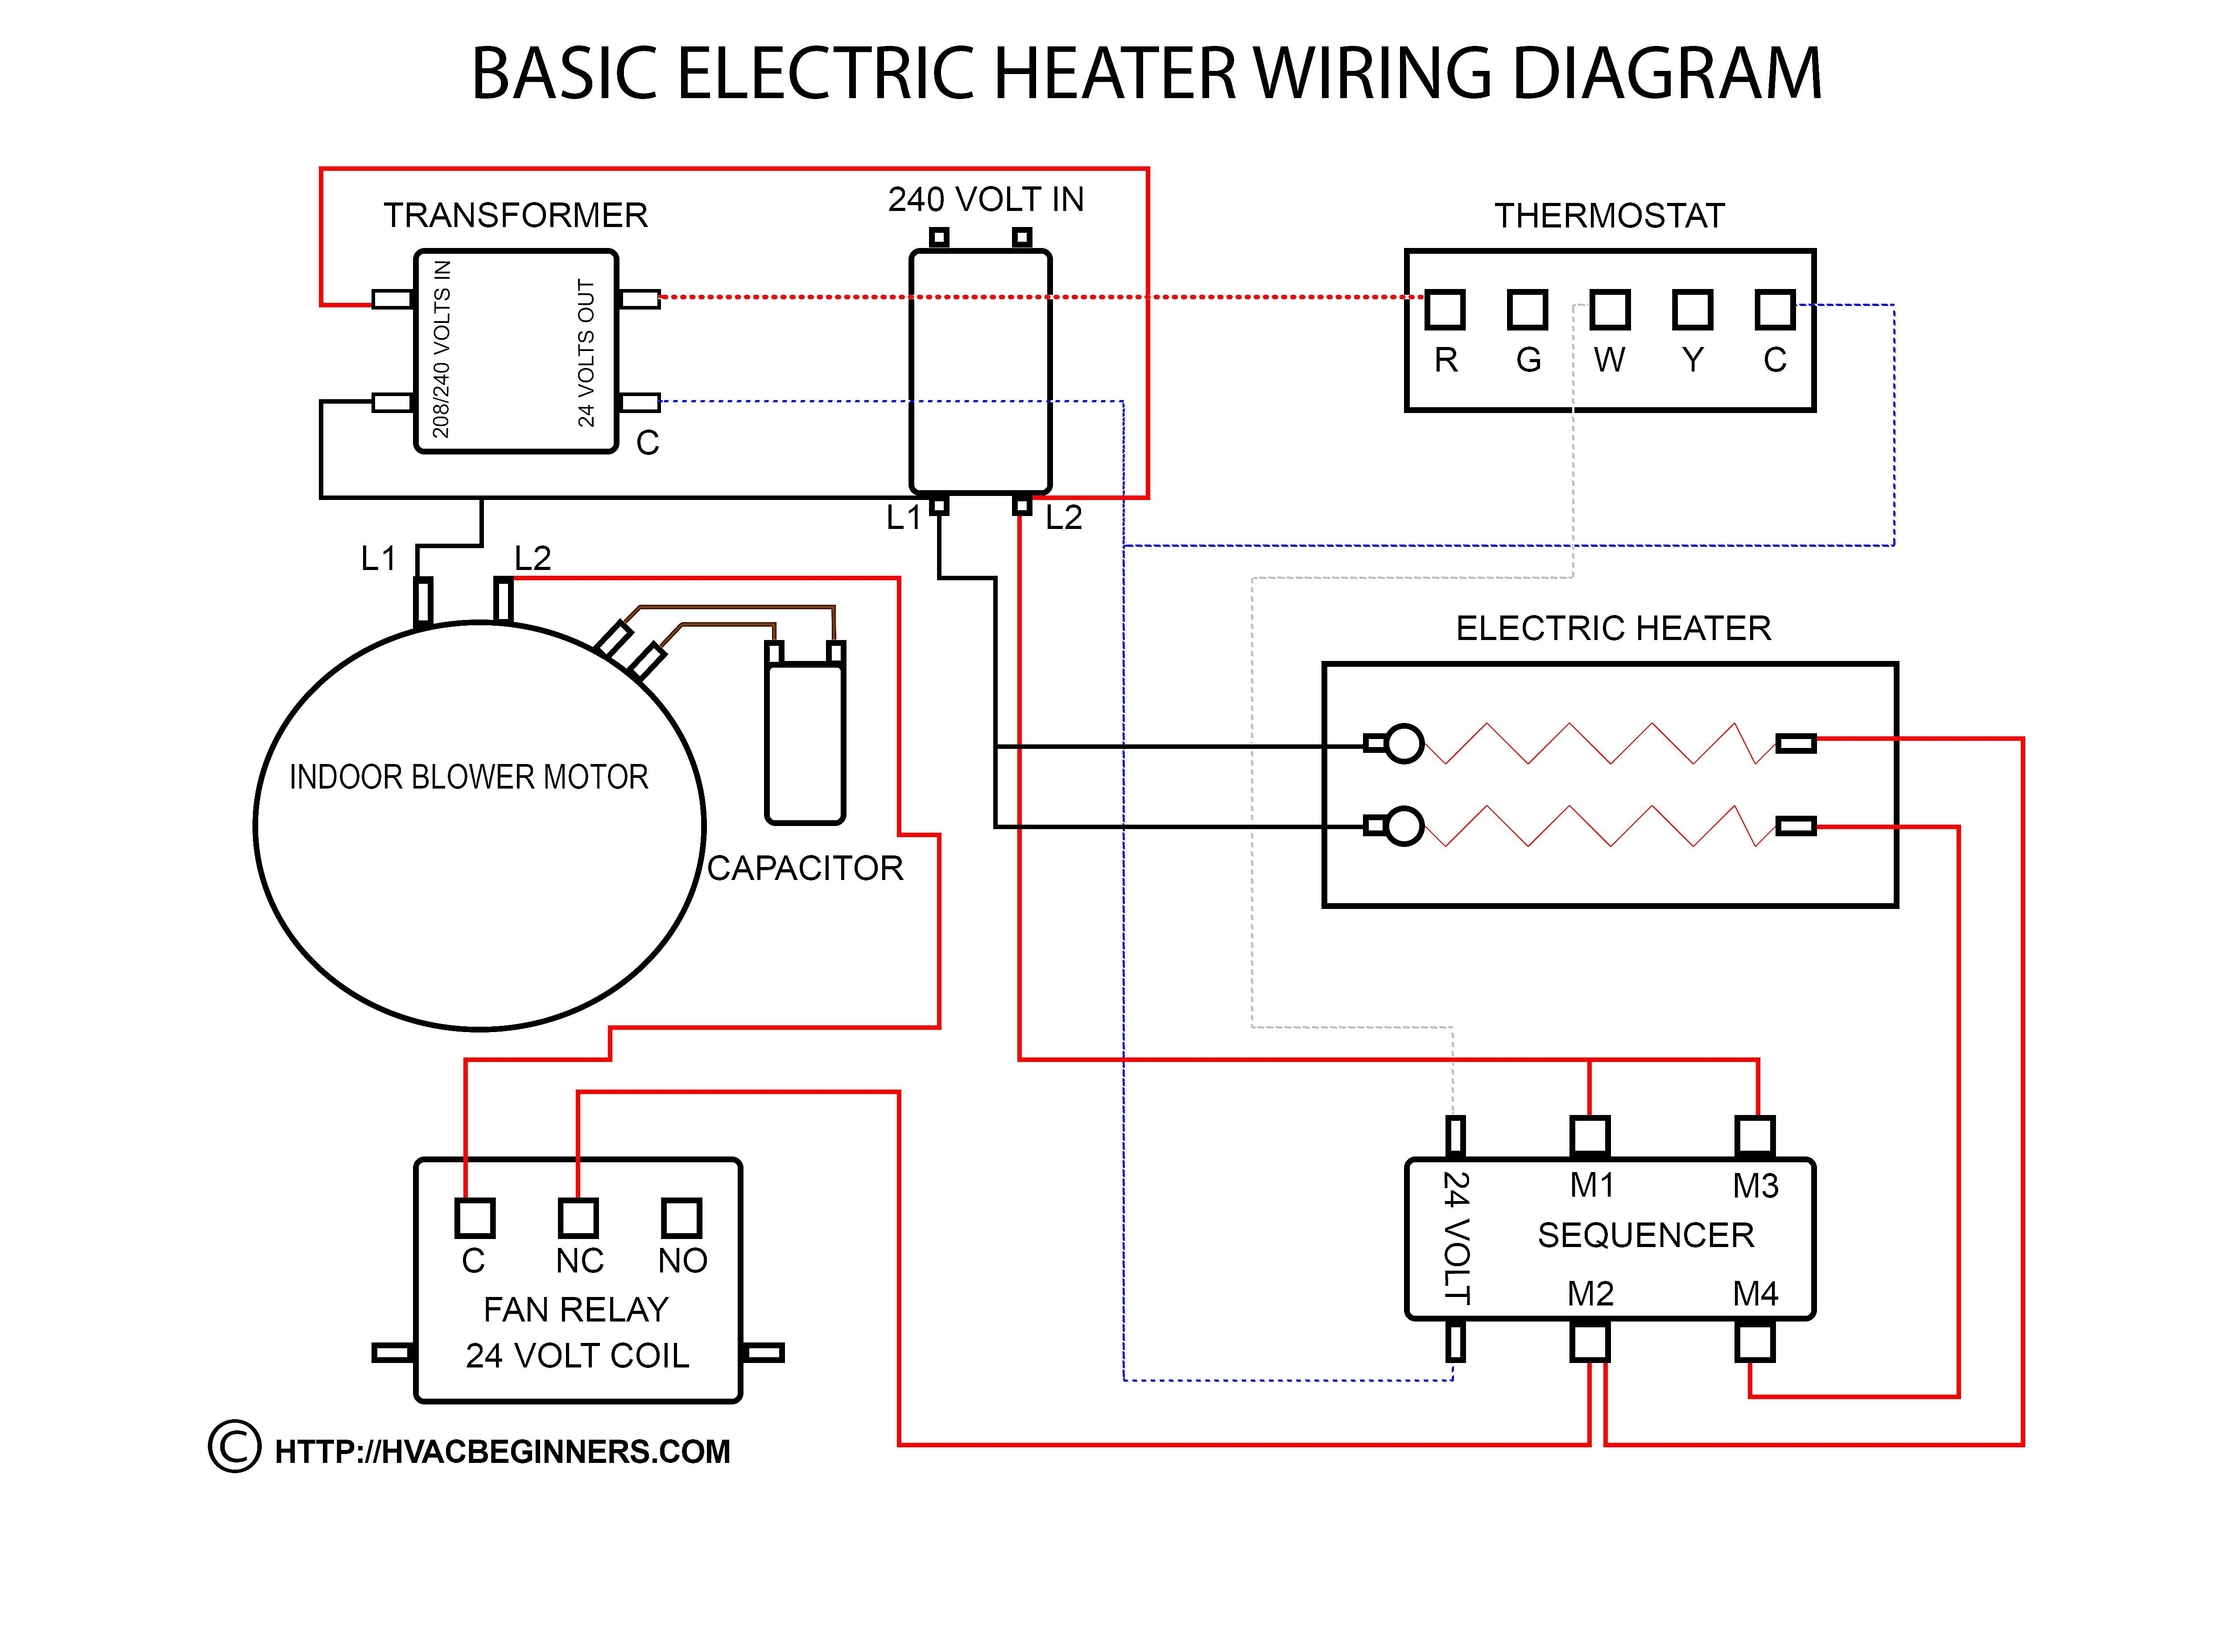 240v 3 phase wye wiring diagram free picture 3 phase pressor wiring diagram free picture gallery of budgit hoist wiring diagram 3 phase download #2